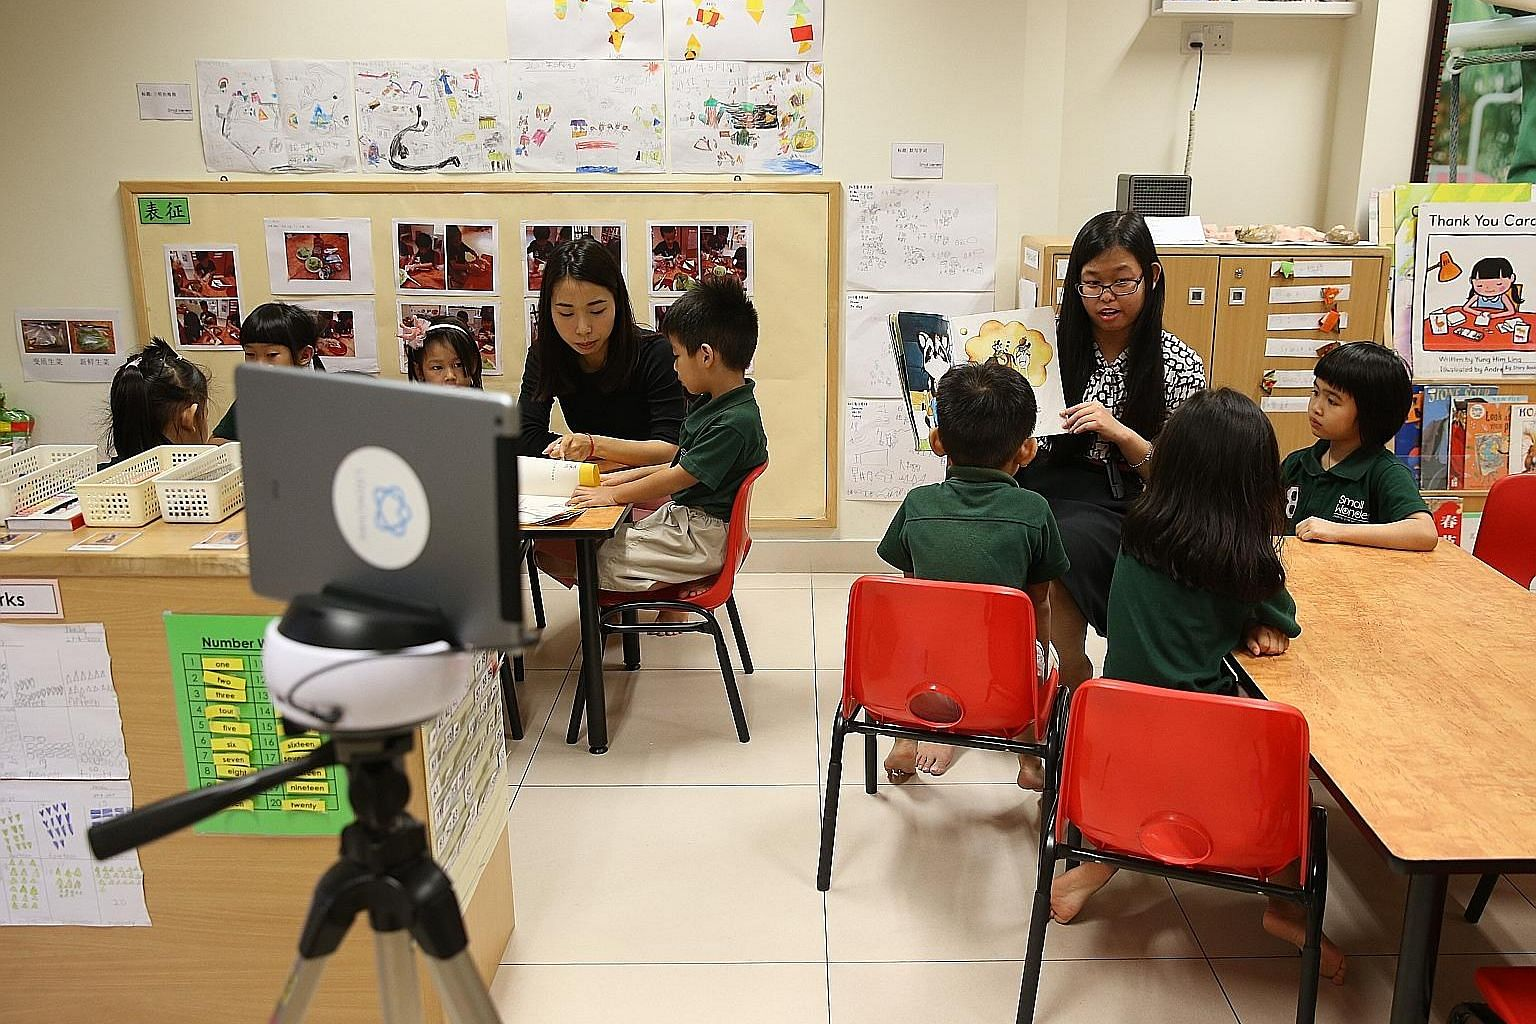 An iPad recording a K2 class to document the activities and developmental progress of children, so that the information can be shared with parents. This is part of the suite of IT solutions offered by the Smart Solutions initiative which will help ra